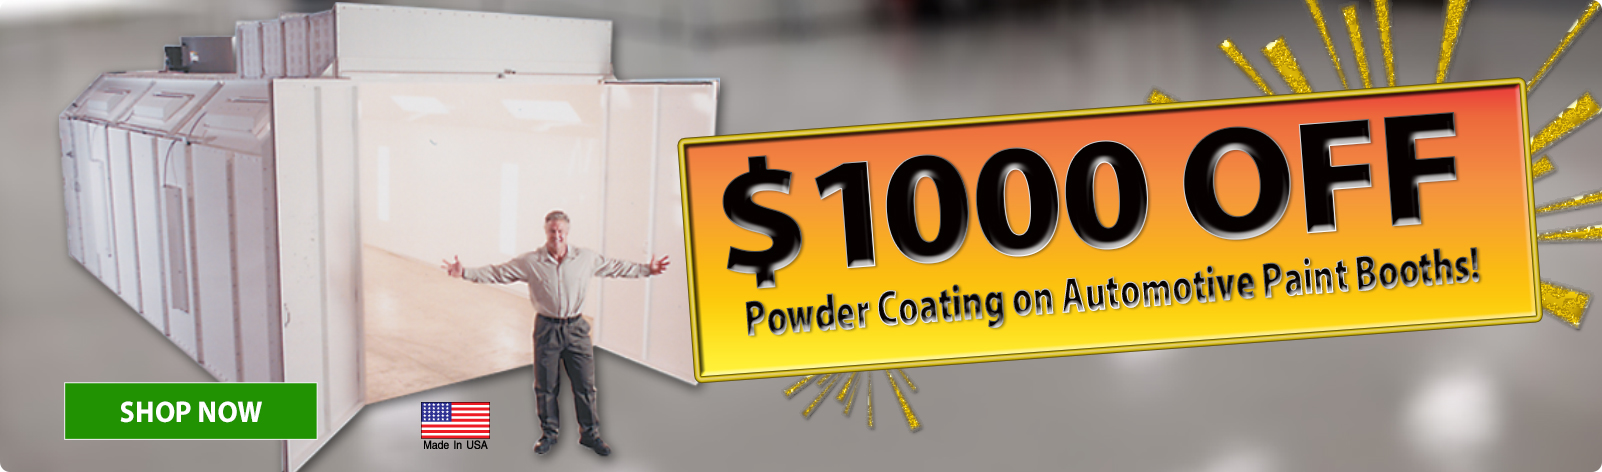 $1,000 Off Powder Coating on Automotive Booths!